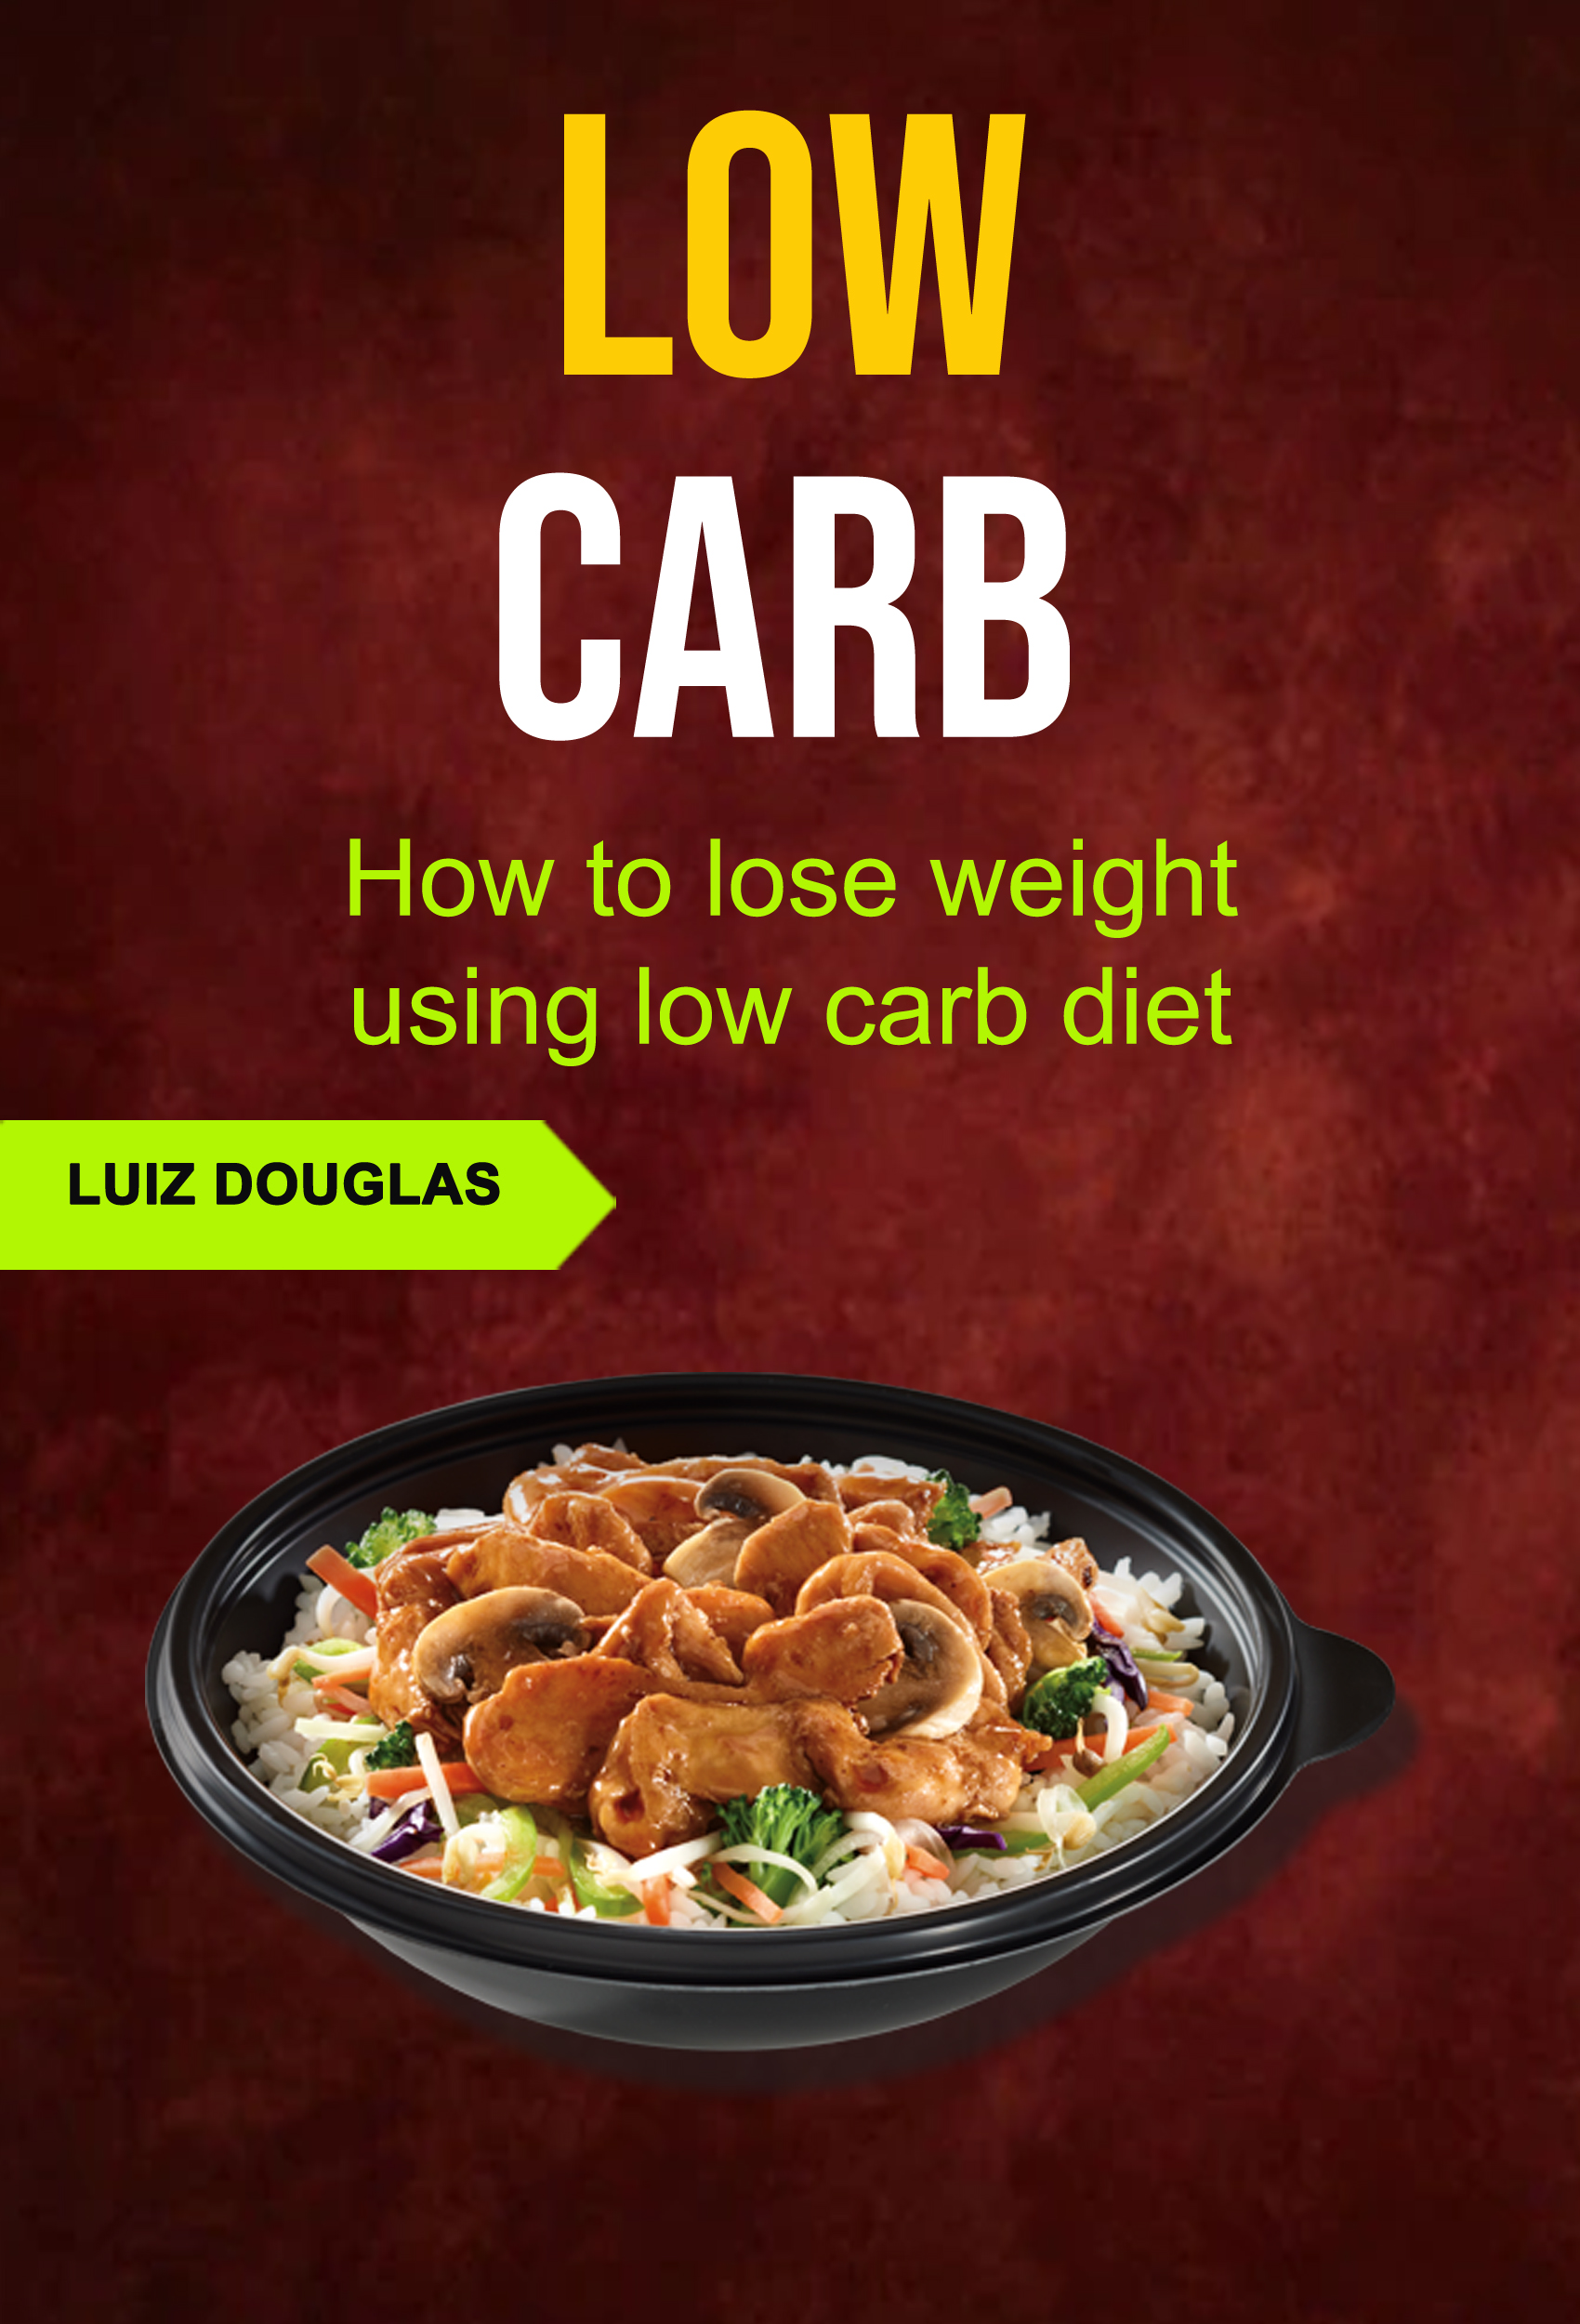 Low carb: how to lose weight using low carb diet